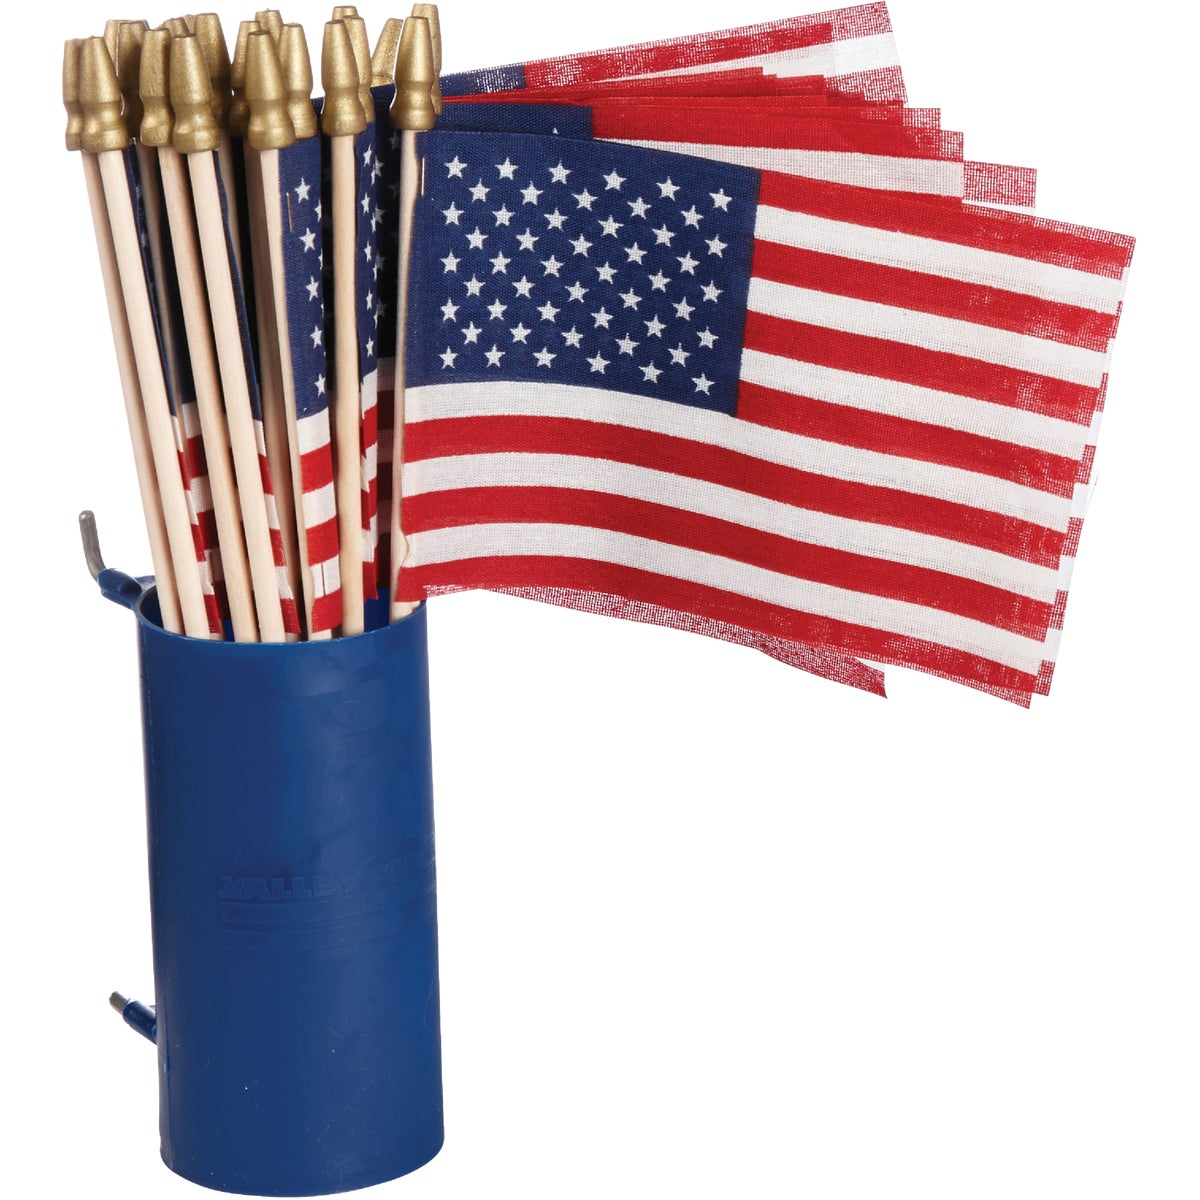 48PK 4X6 DISP CUP FLAG - USE4D by Valley Forge Flag